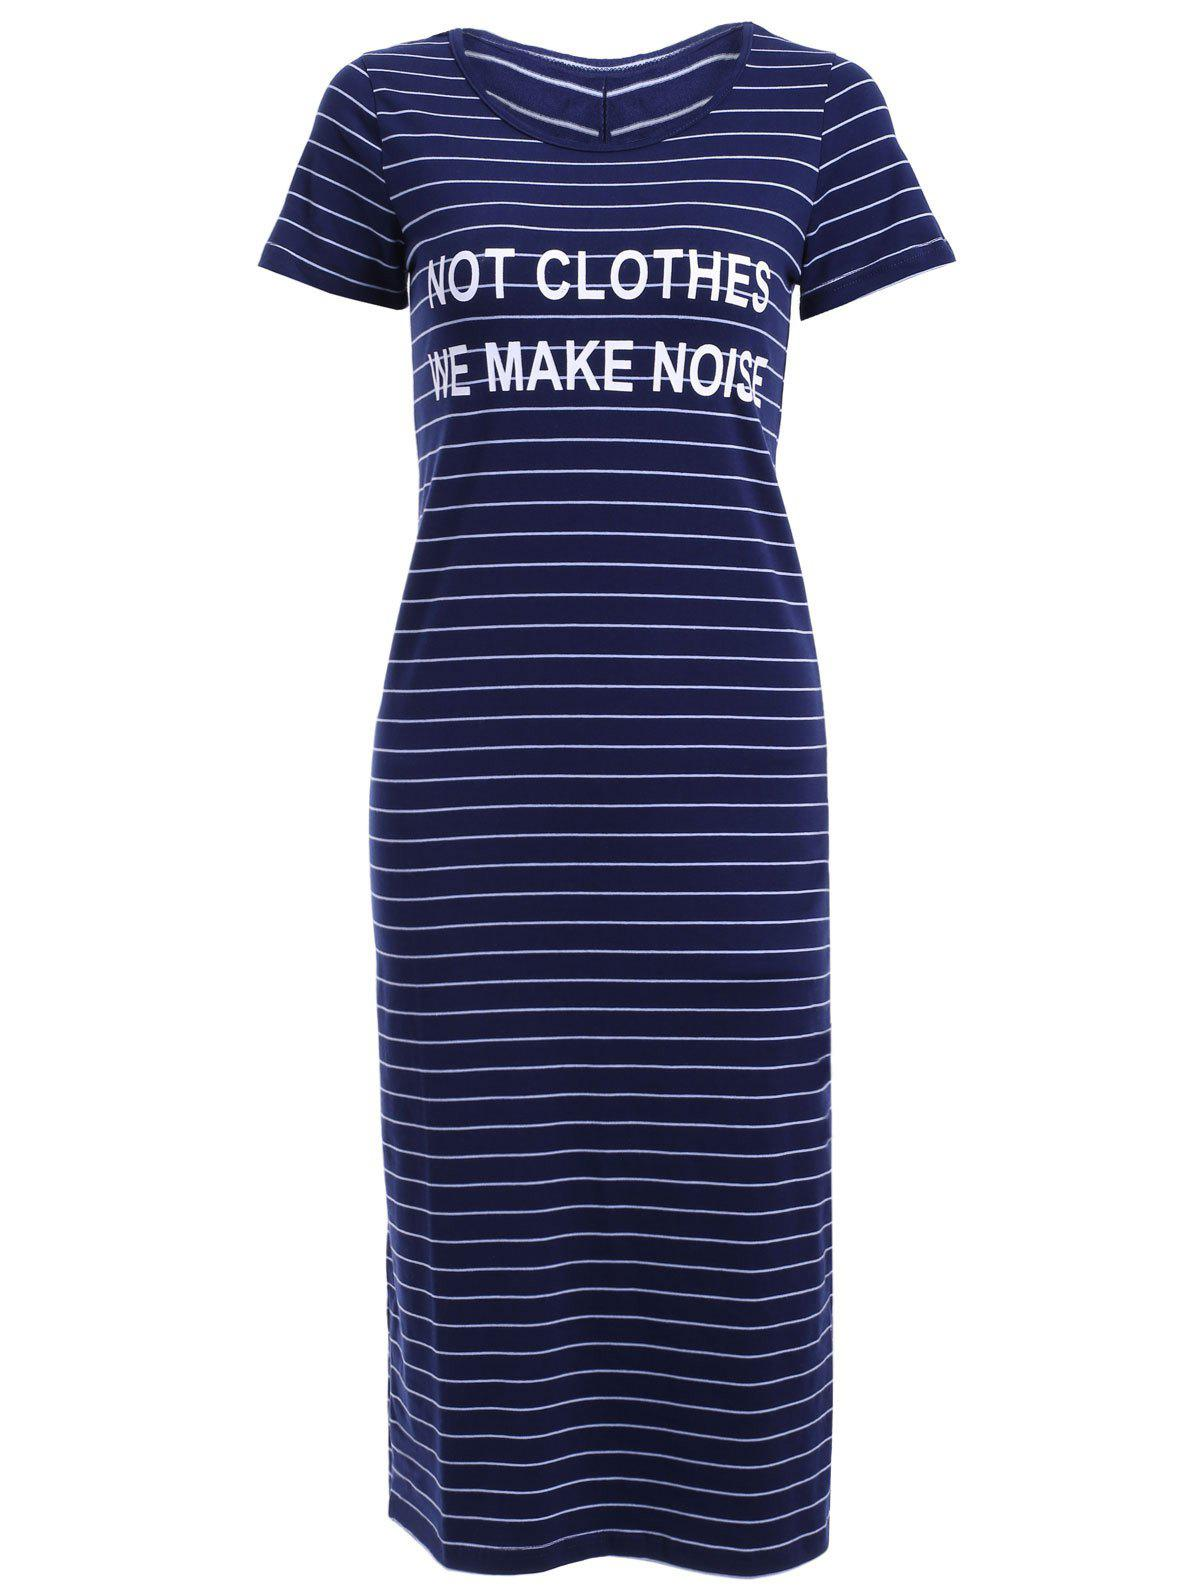 Stylish Women's Scoop Neck Striped Midi Dress - BLUE L